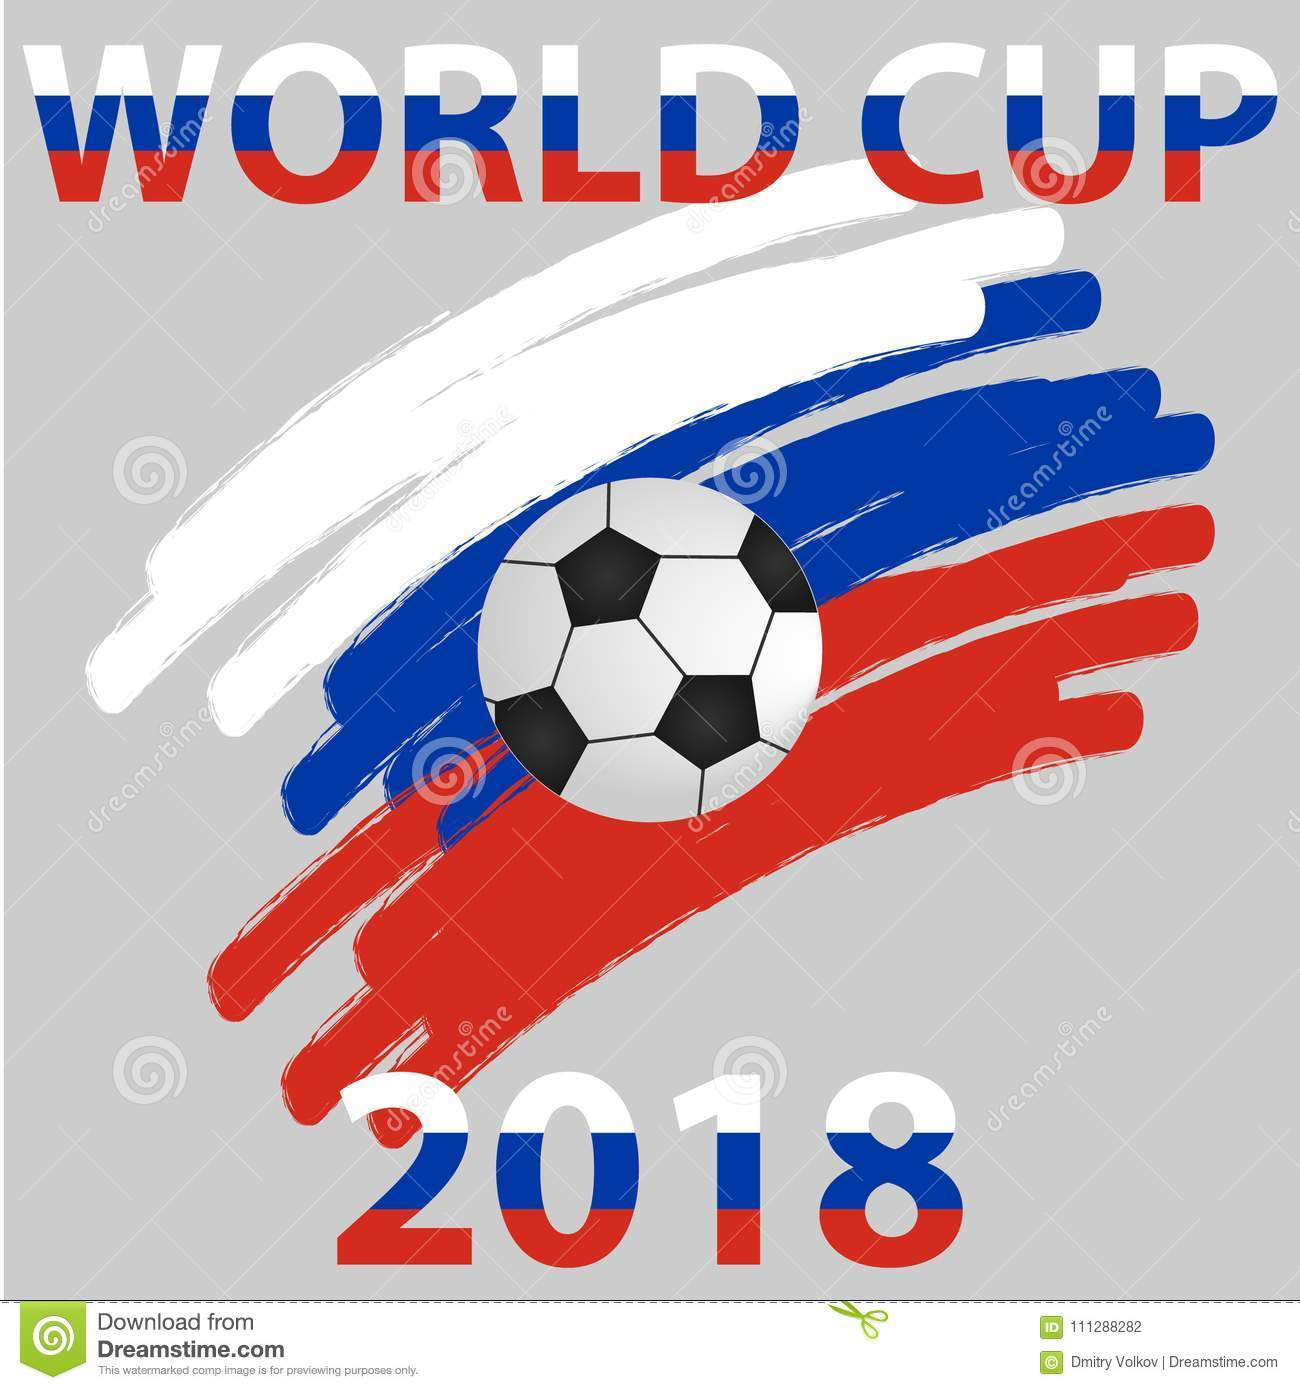 Logo of the World Cup 2018. Badge of the World Cup.